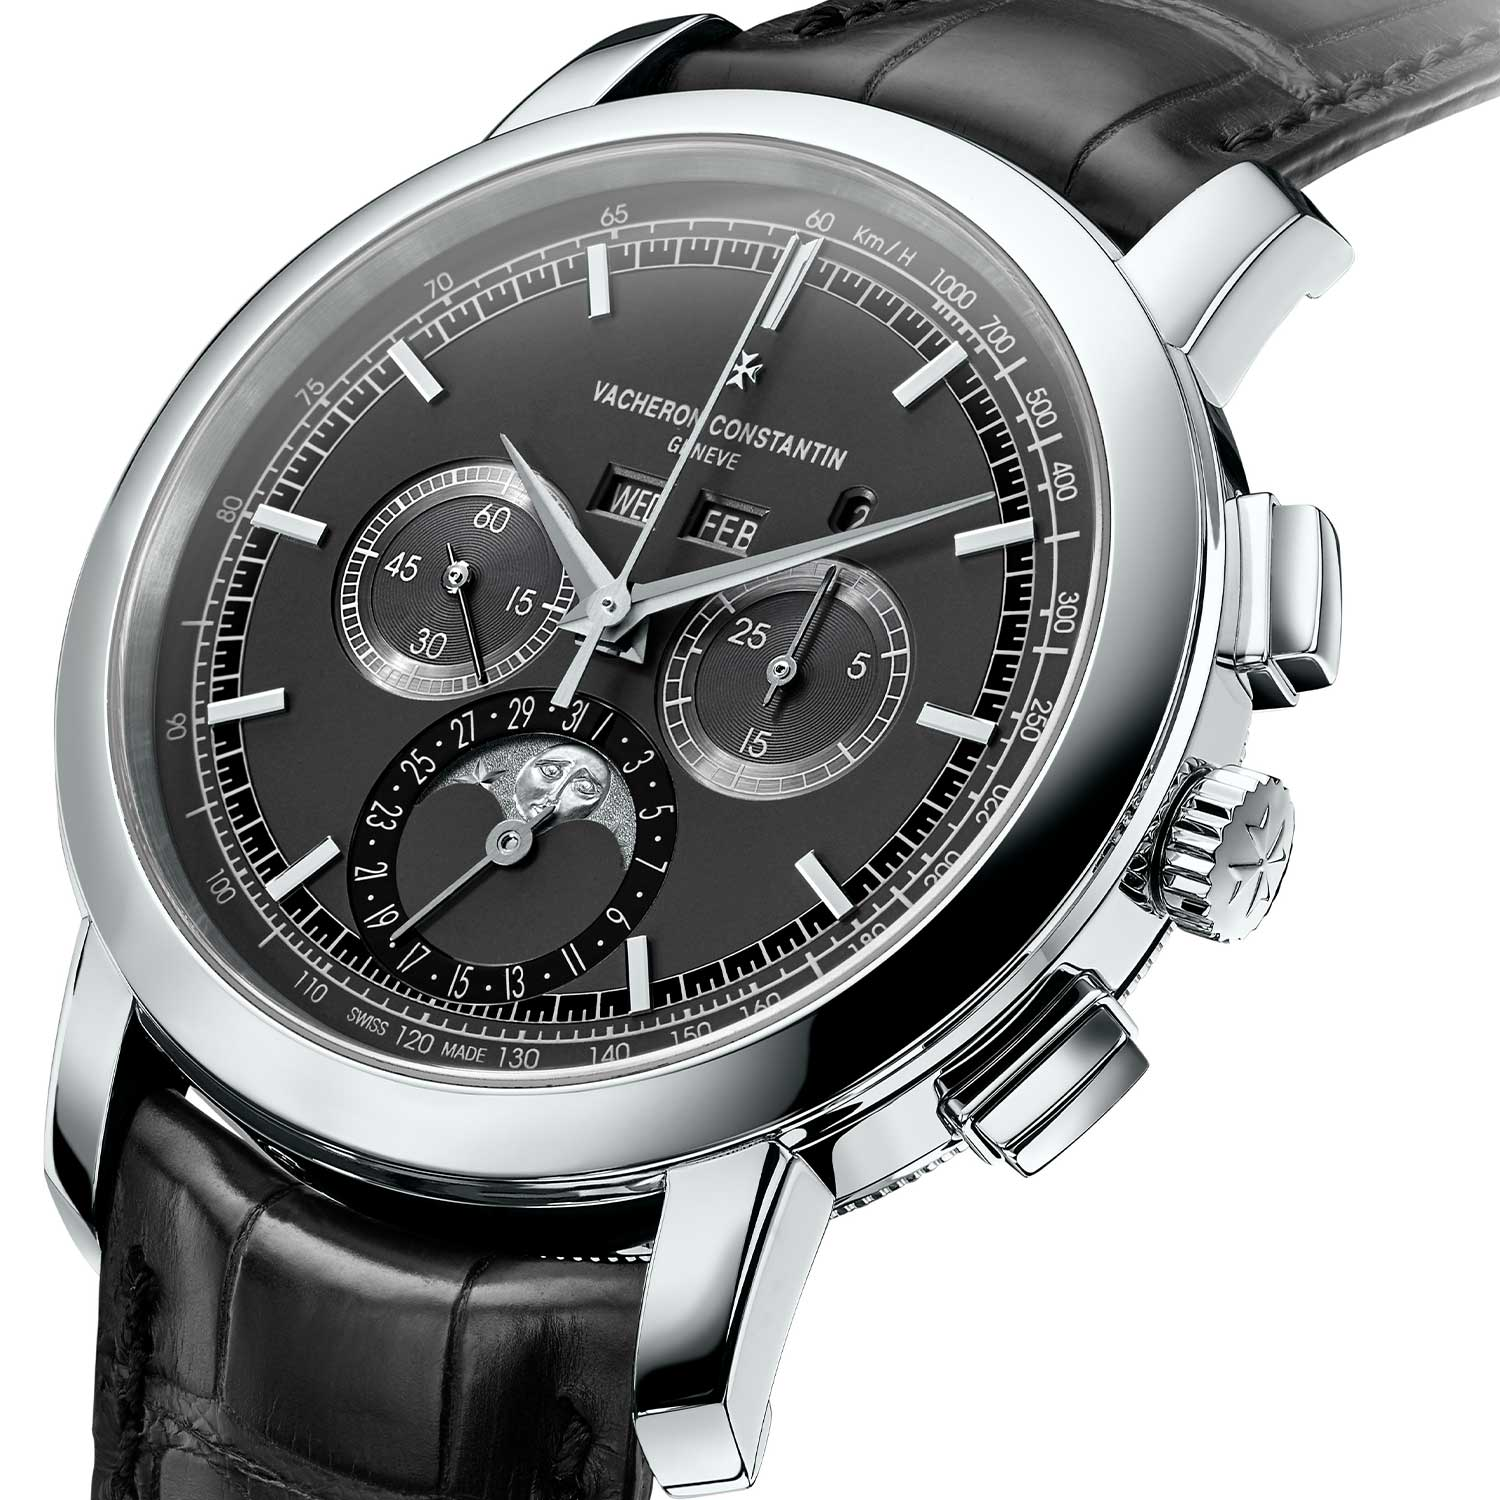 The Vacheron Constantin Traditionnelle Chronograph Perpetual Calendar was introduced at SIHH 2017 in platinum and pink gold